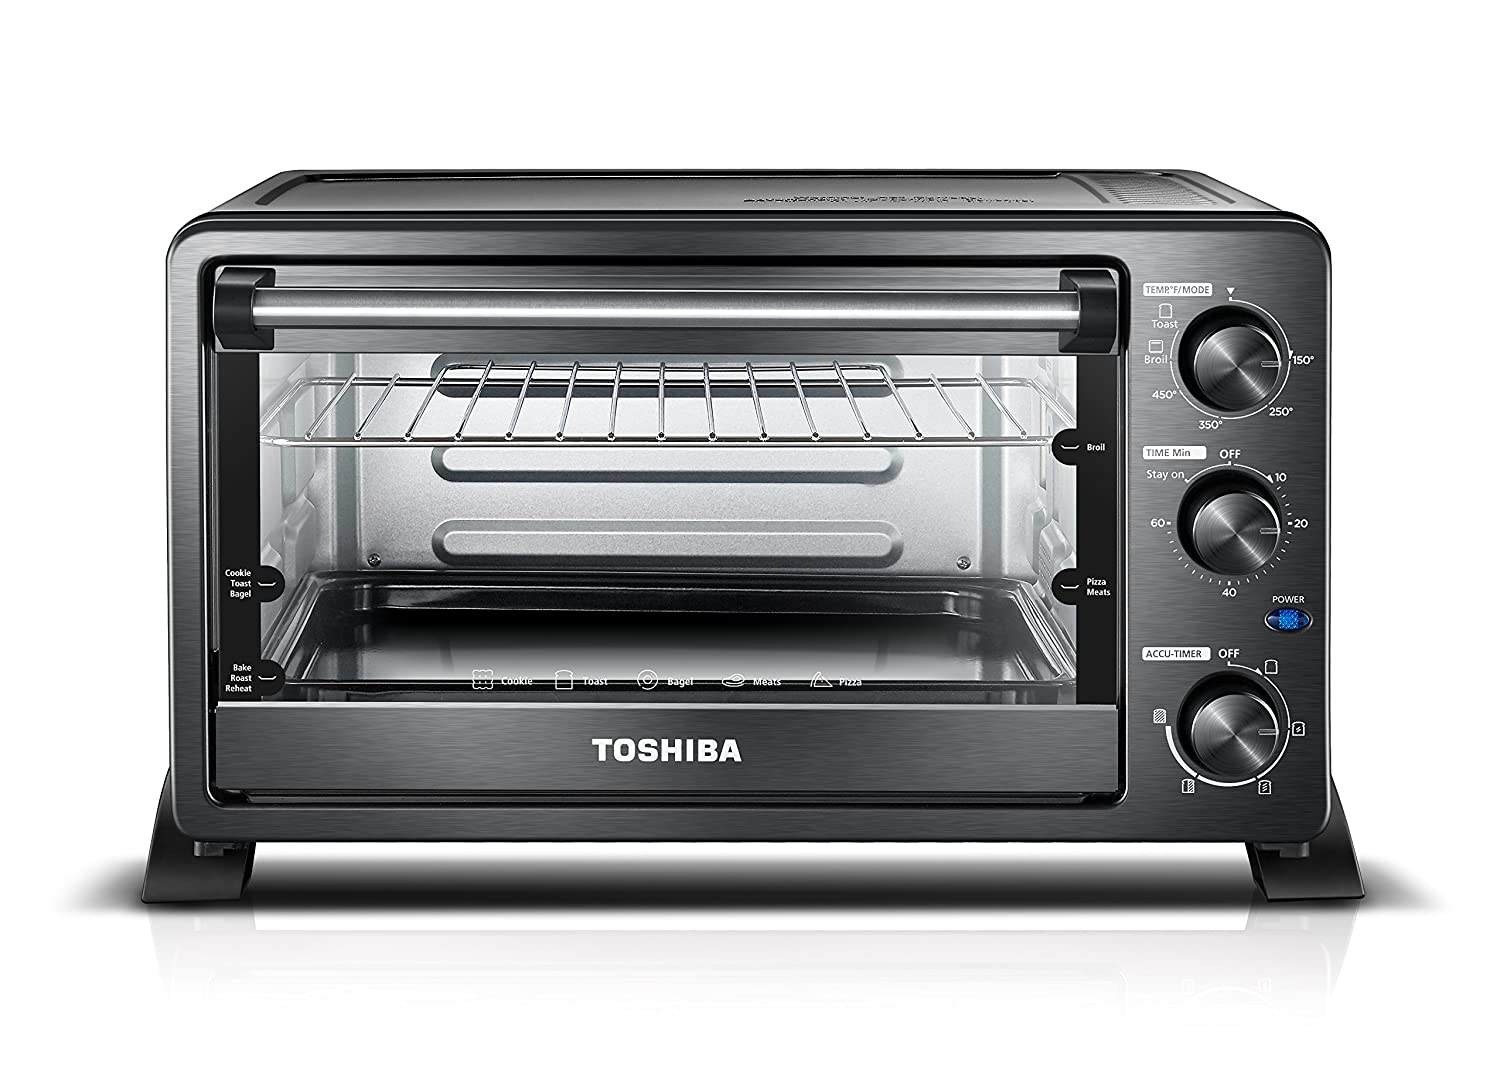 Toshiba MC25CEY-BS Mechanical oven with Convection/Toast/Bake/Broil Function 25 L capacity/6 Slices Bread/12-inch Pizza Black Stainless Steel